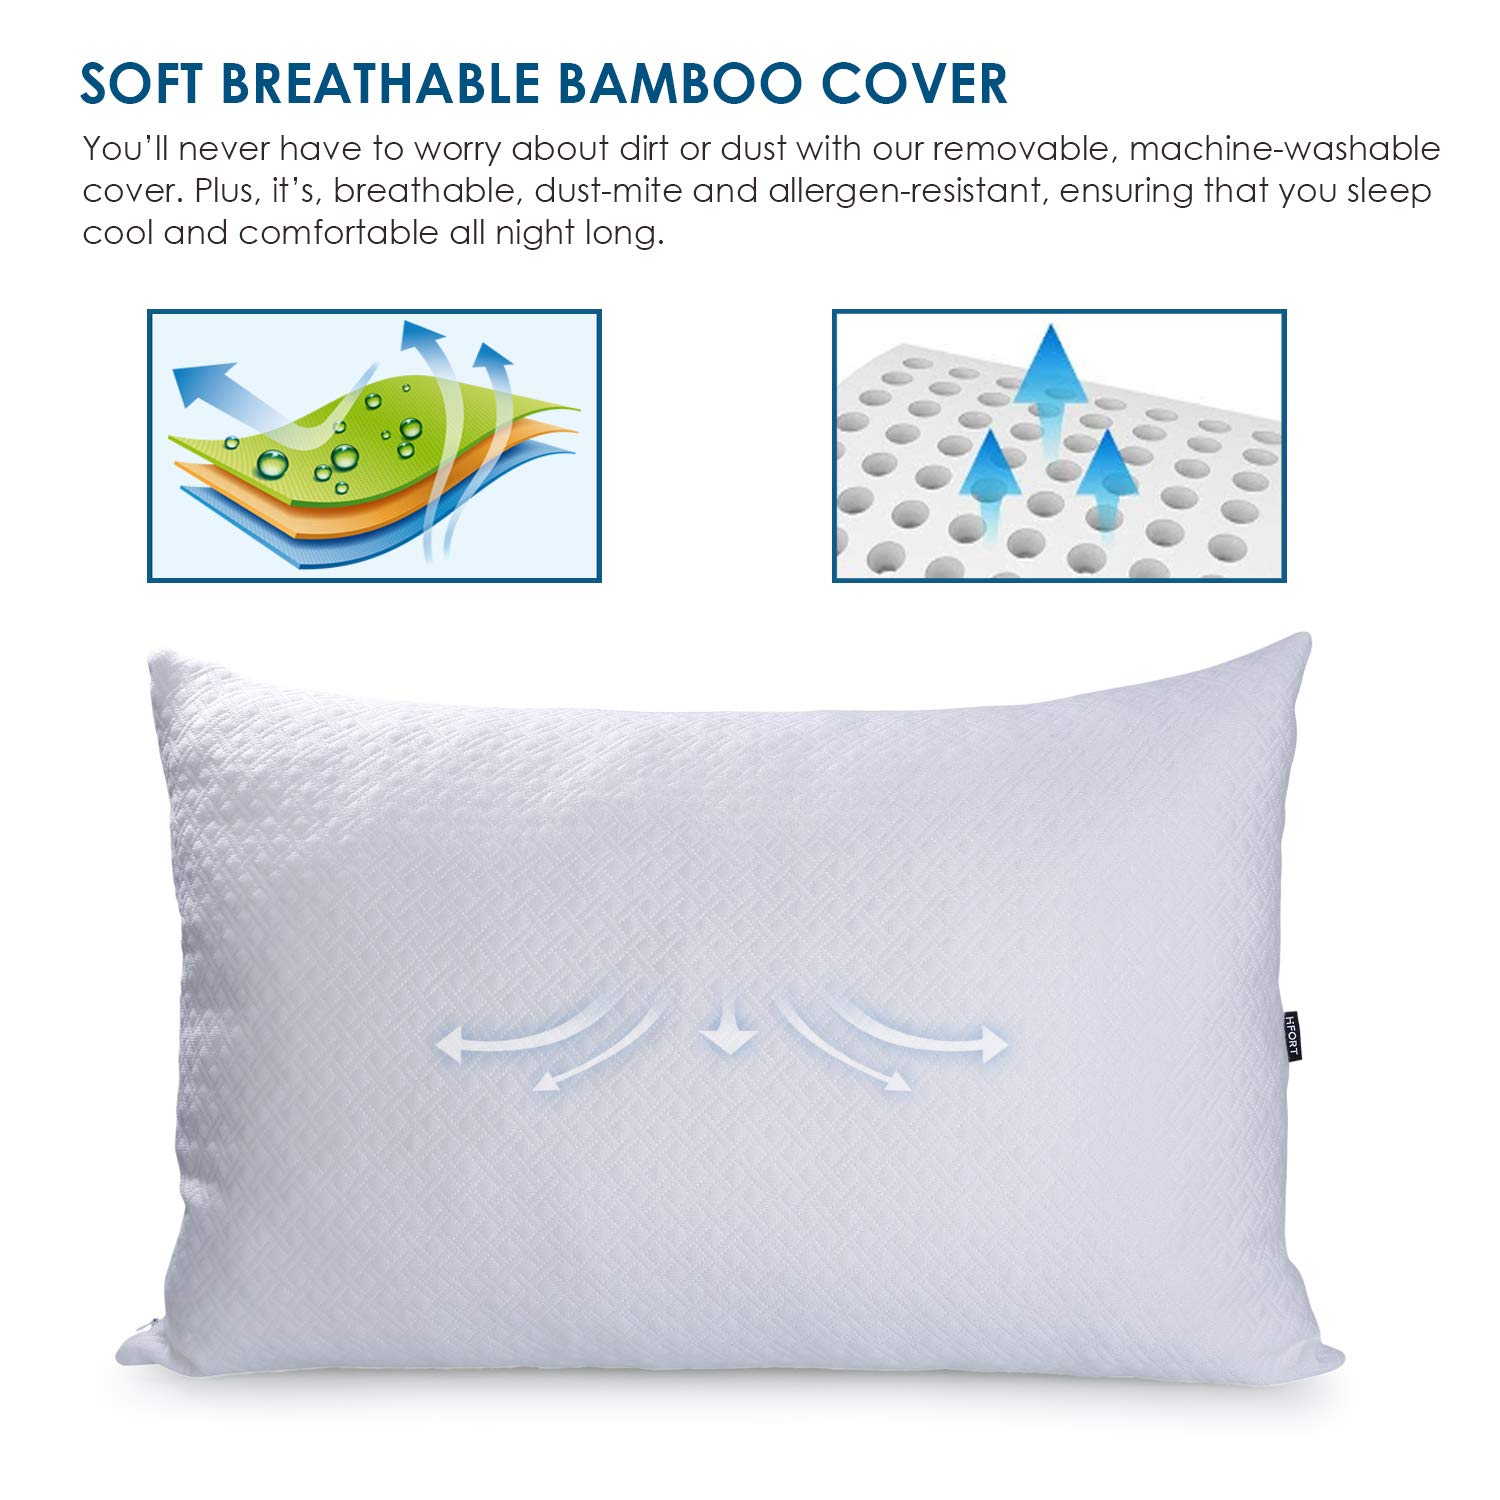 HIFORT Shredded Memory Foam Cooling Pillow - Queen Bed Pillows for Sleeping with Hypoallergenic Removable Bamboo Cover - Hotel Quality Adjustable Loft for Stomach Back and Side Sleeper